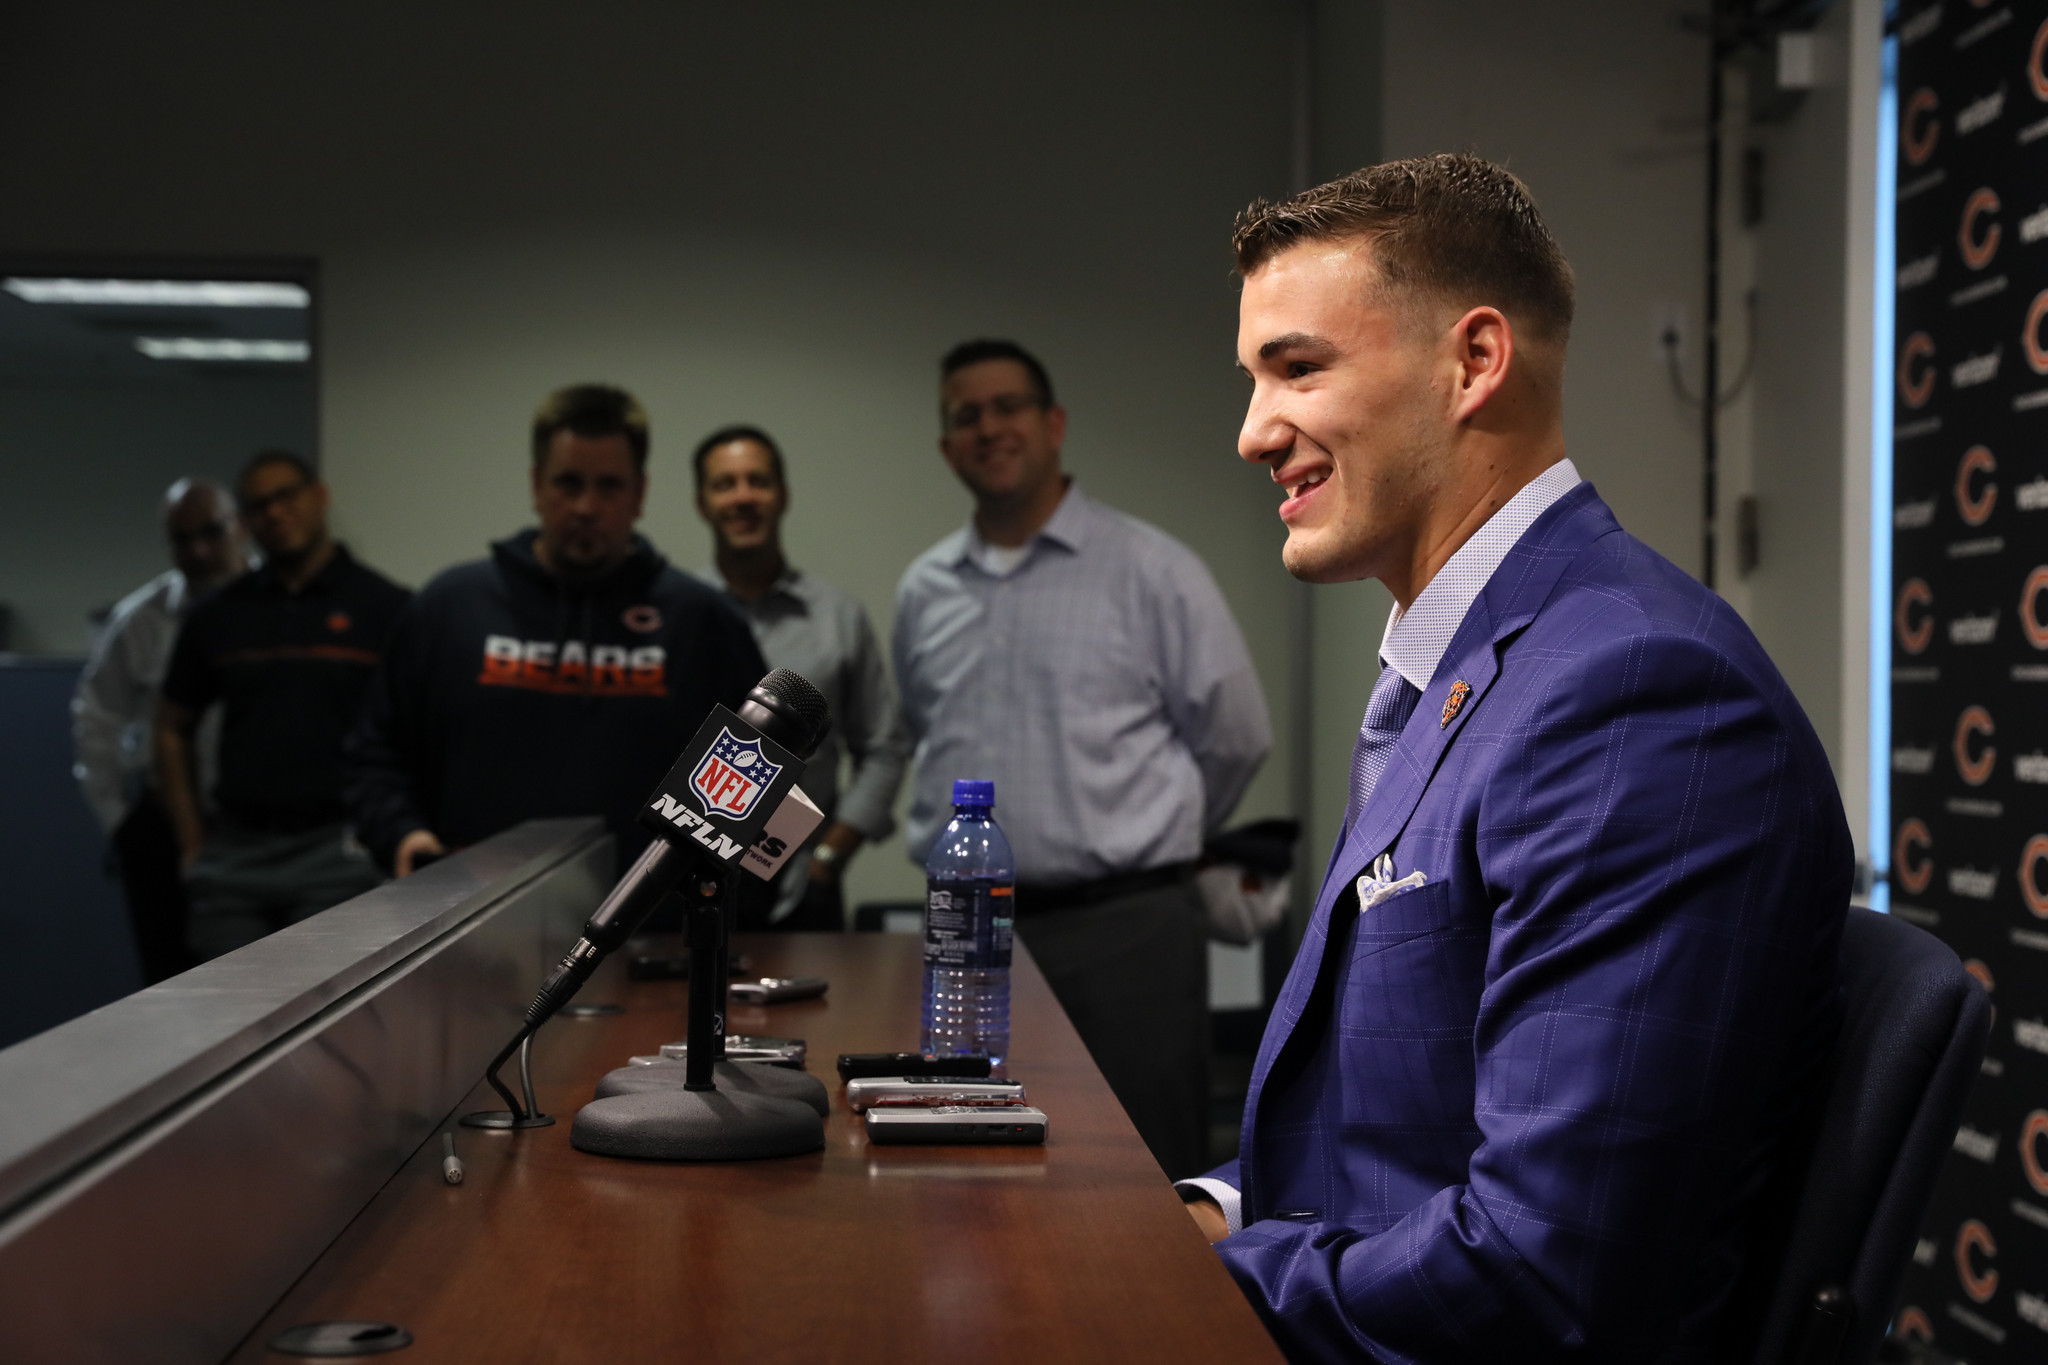 Ct-bears-ryan-pace-mitch-trubisky-nfl-draft-20170427